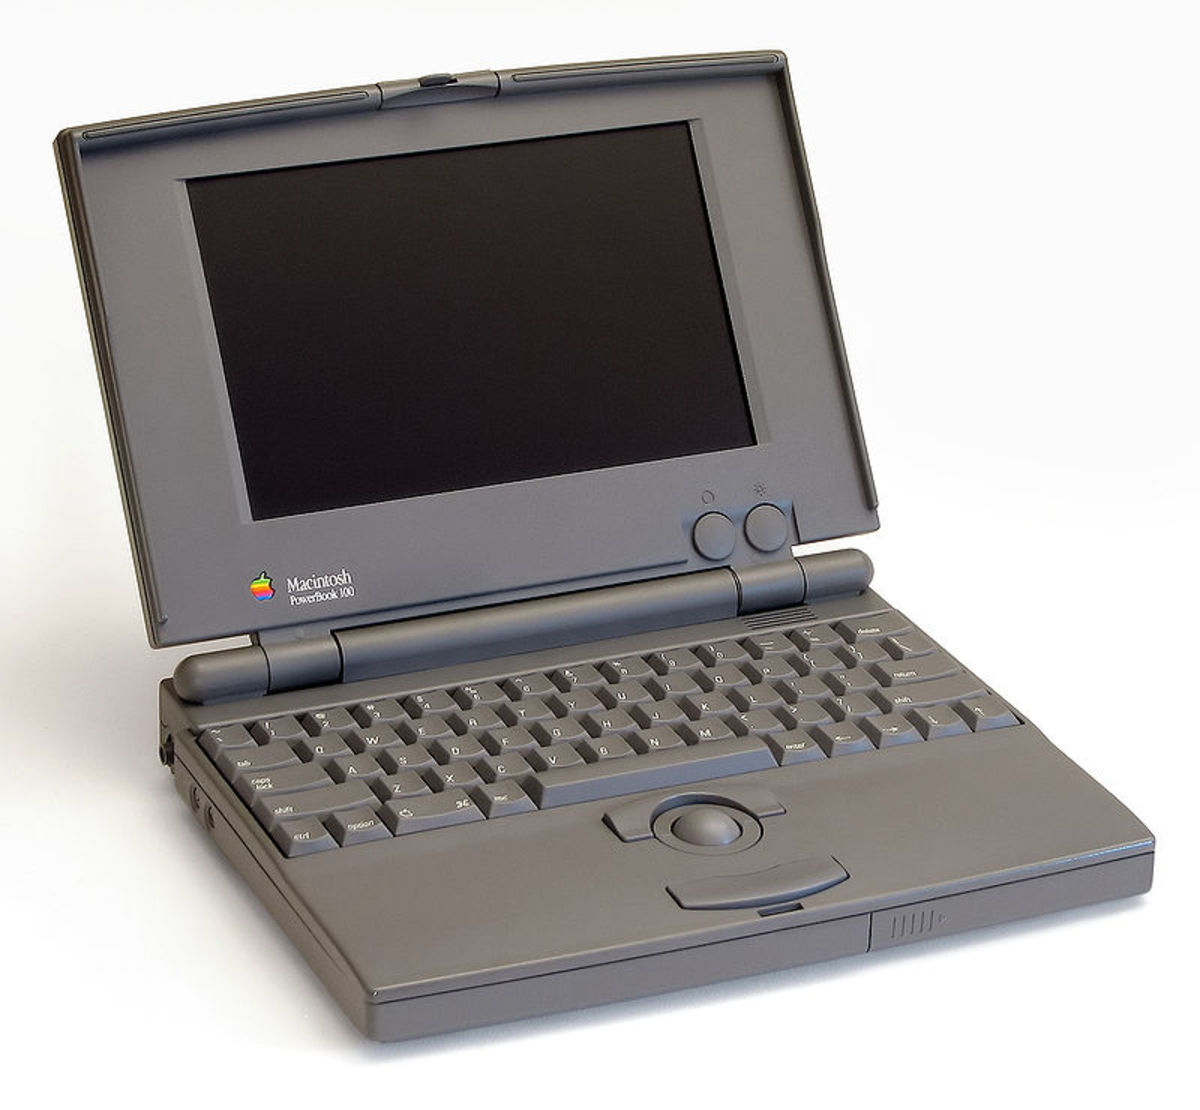 The Powerbook 100